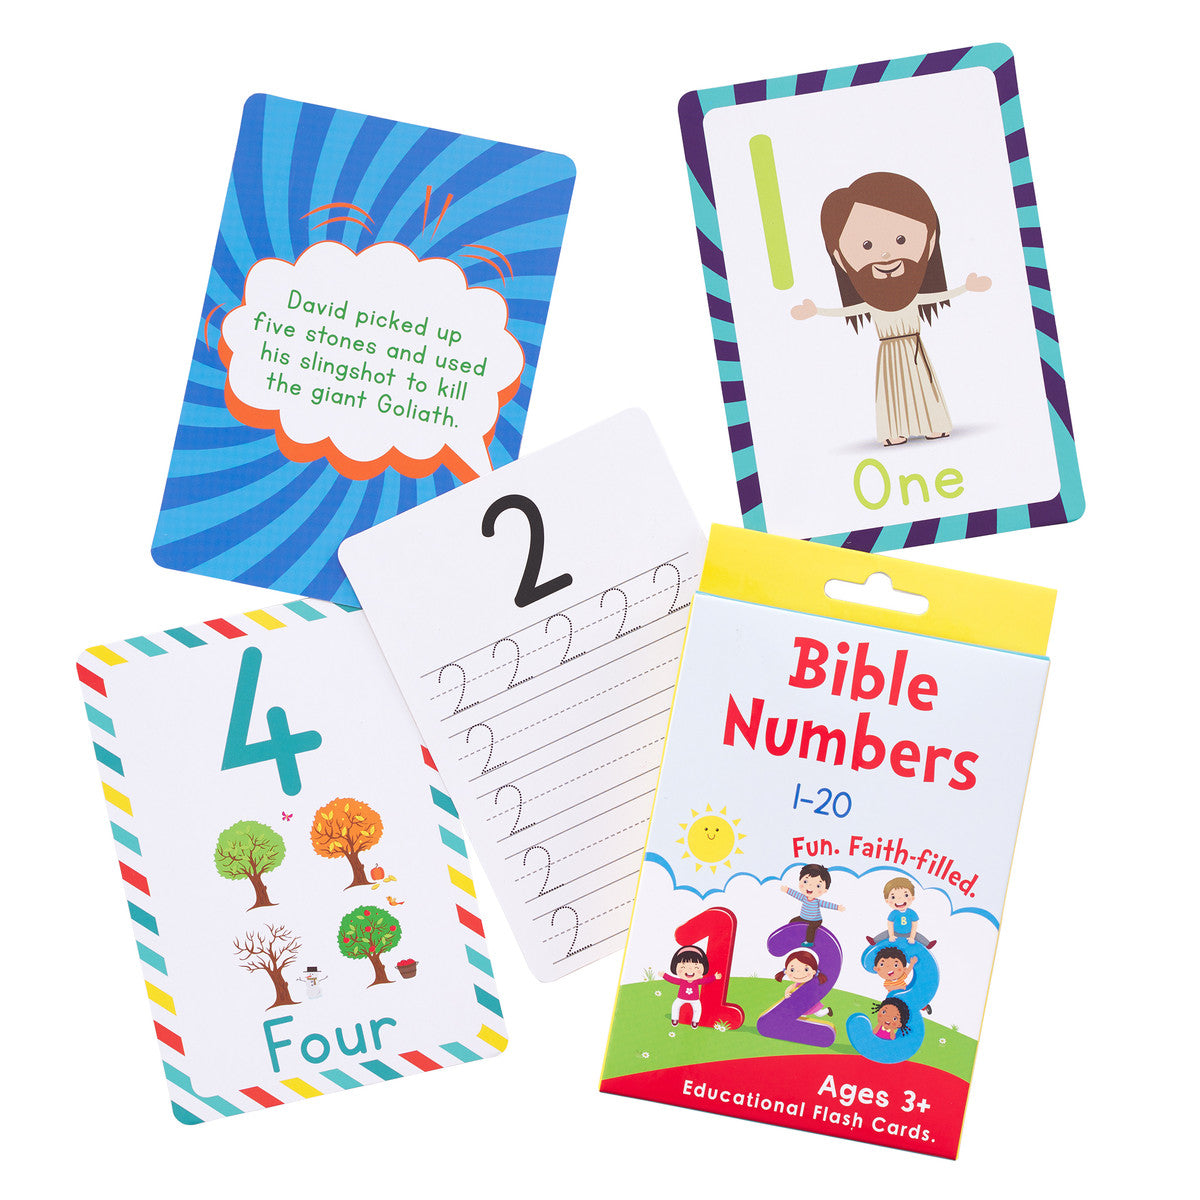 ROCKONLINE | New Creation Church | NCC | Joseph Prince | ROCK Bookshop | ROCK Bookstore | Star Vista | Children | Kids | Bible Numbers Boxed Cards for Kids | Scriptures | Bible | Free delivery for Singapore Orders above $50.